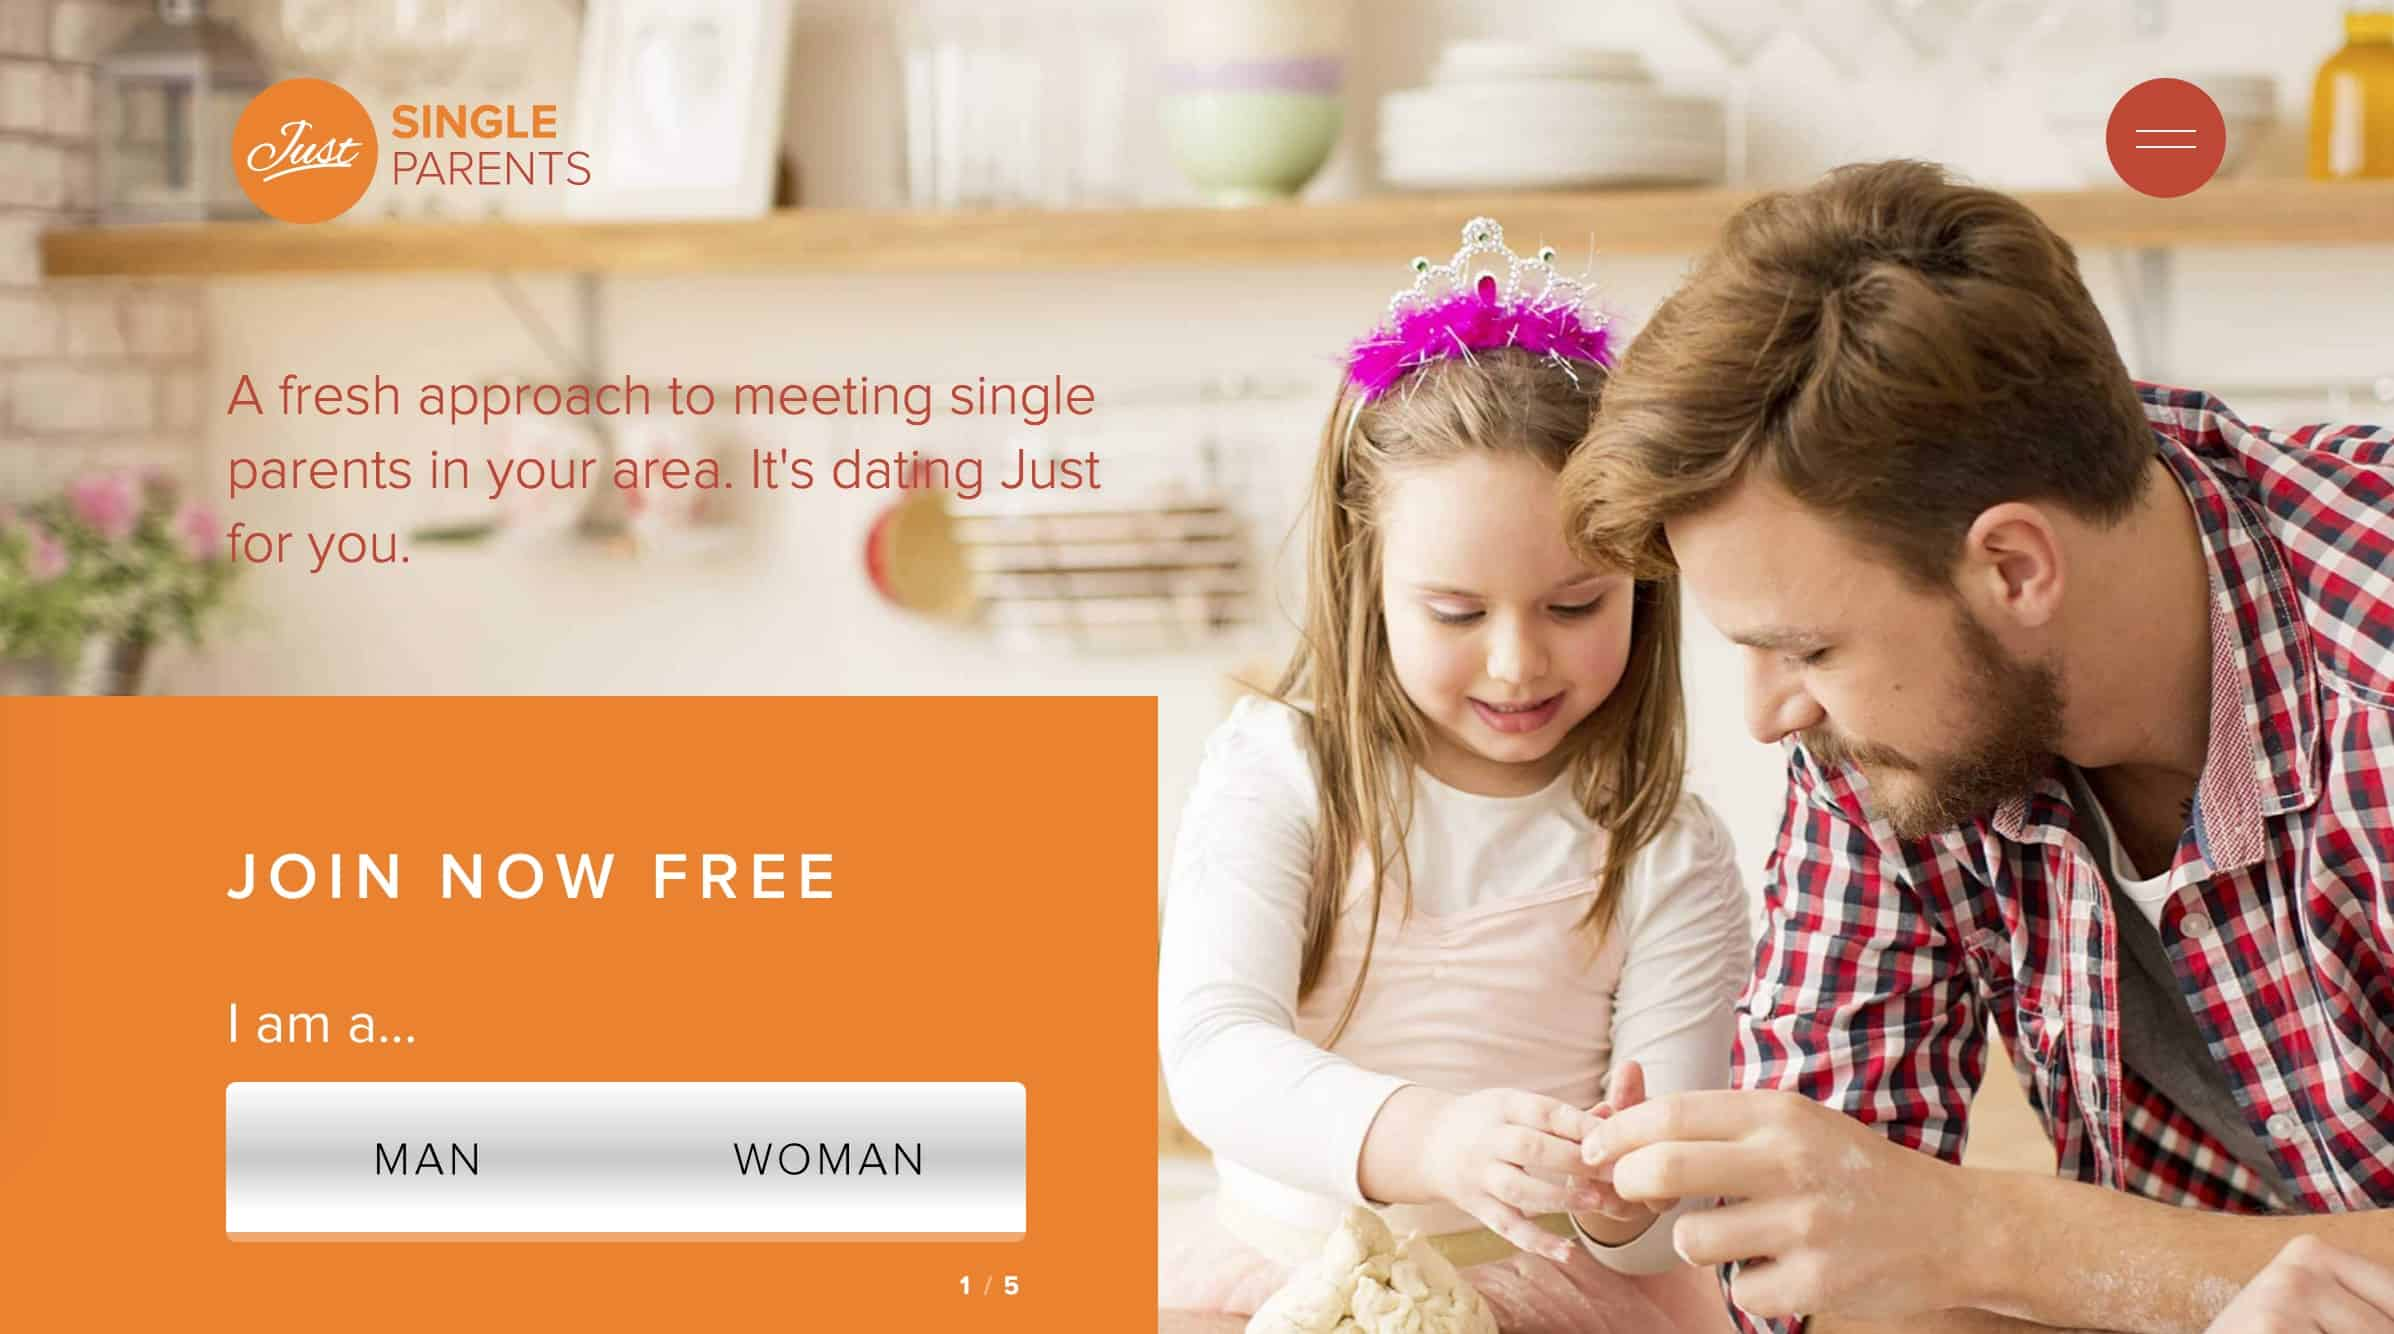 free single parent dating site Singleparentmeet review: we tested singleparentmeet to find out if this single parent dating site legit or a scam read our full review & test results on singleparentmeetcom.